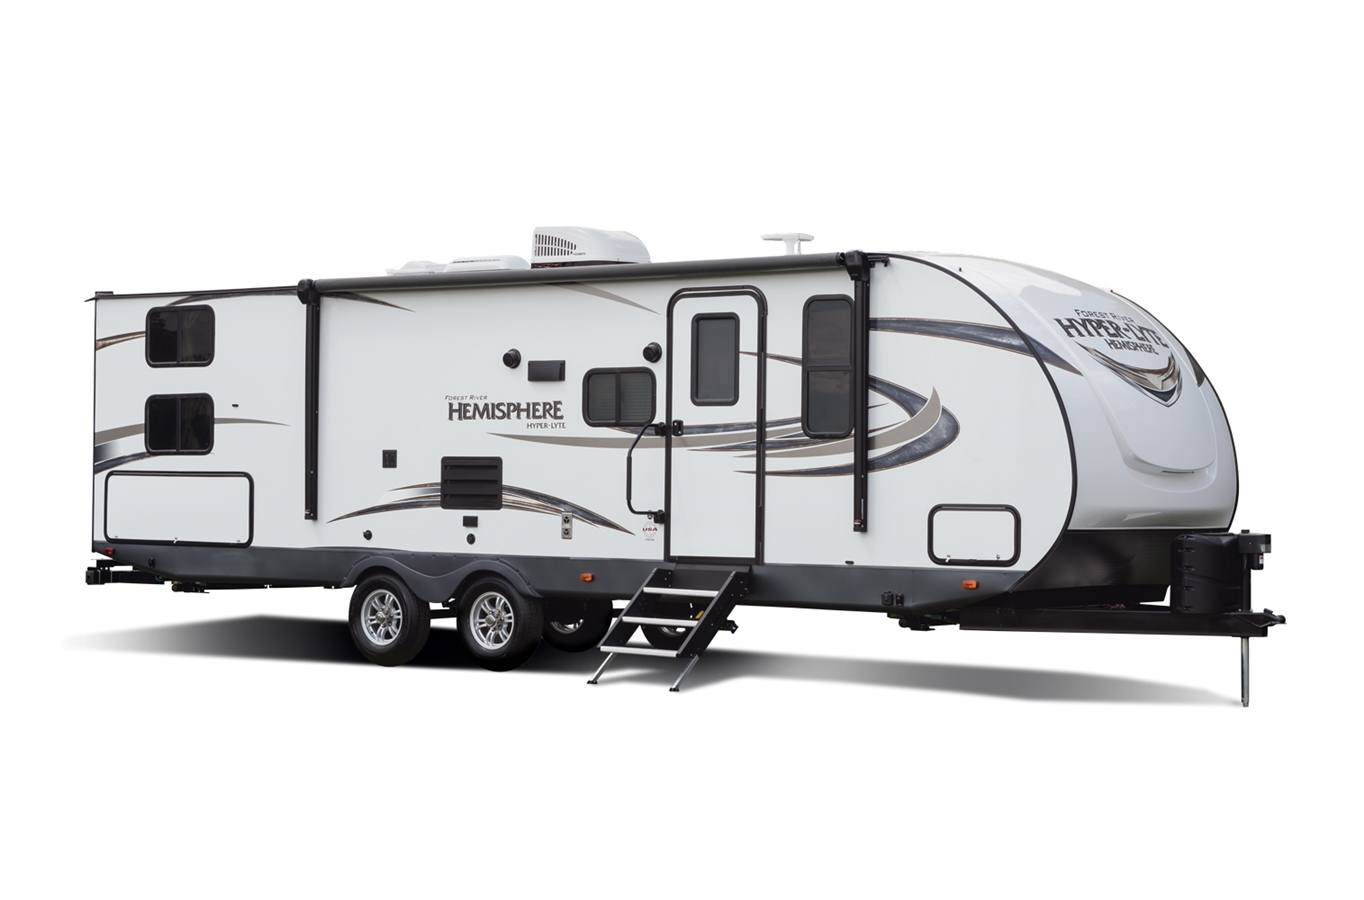 2019 salem by forest river 25rkshl salem hemisphere hyper-lyte fifth wheels